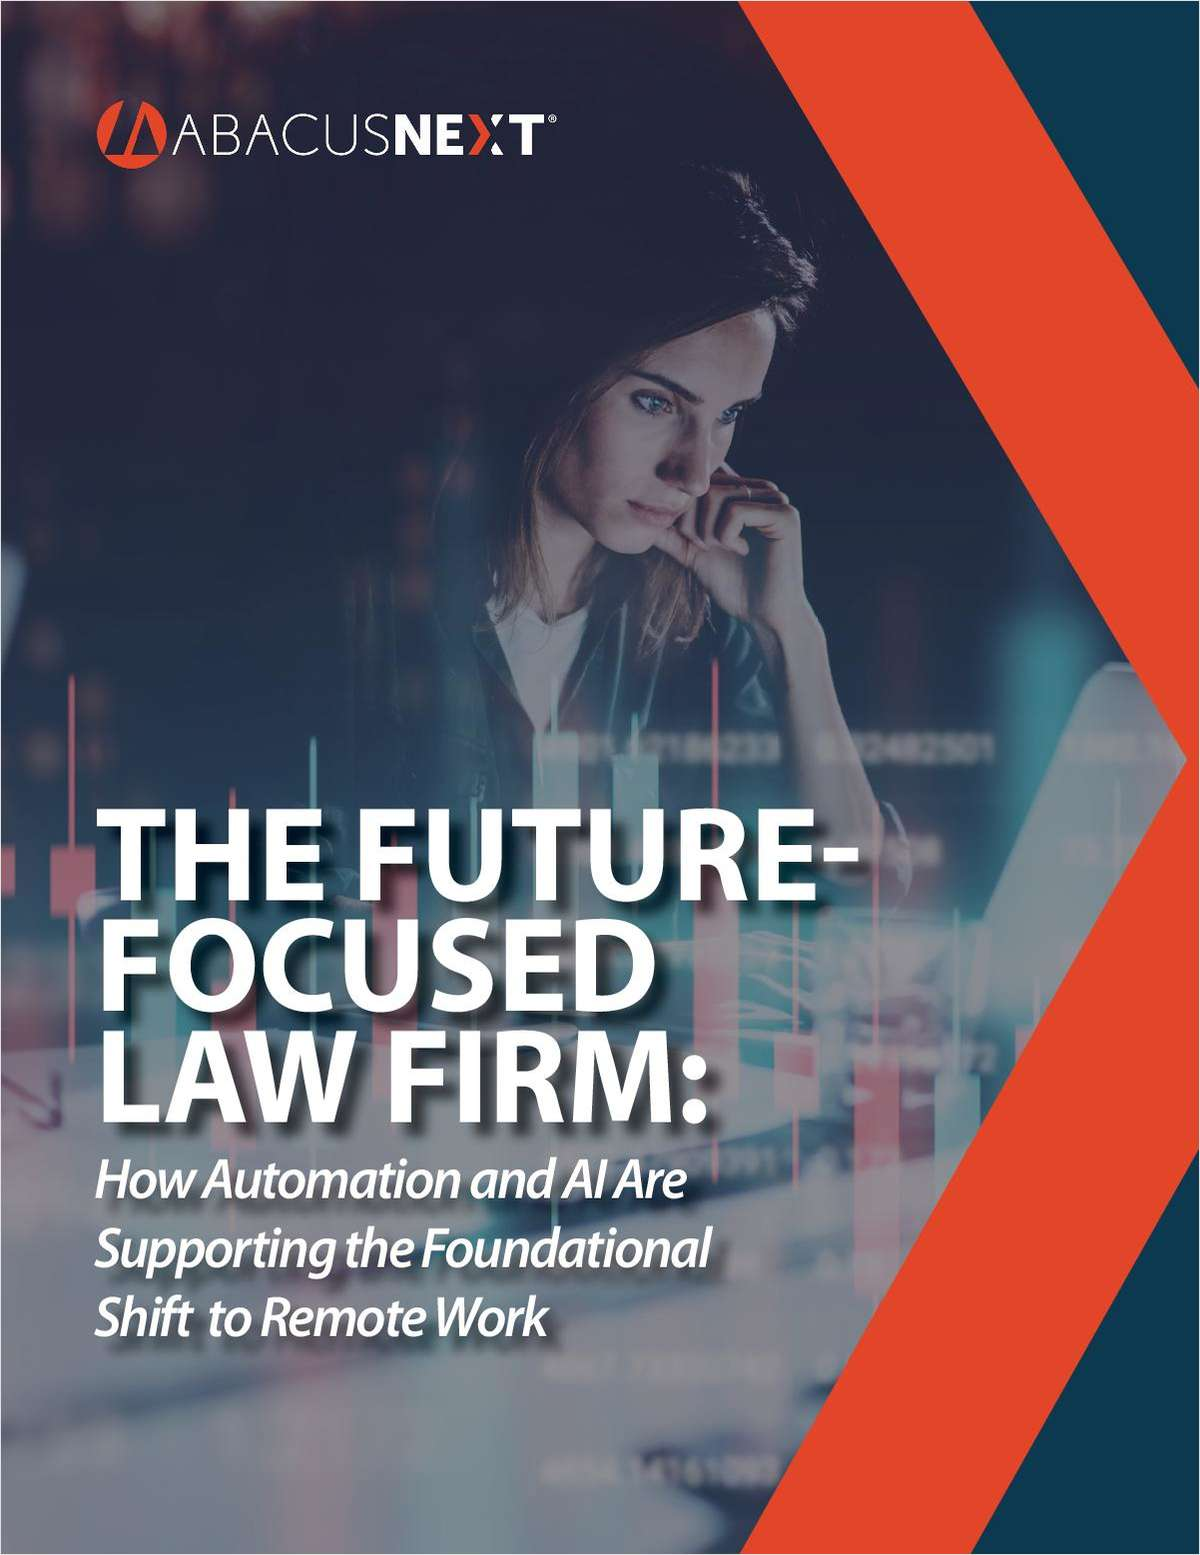 Future Focused Law Firm: How Technology is Supporting the Shift to Remote Work